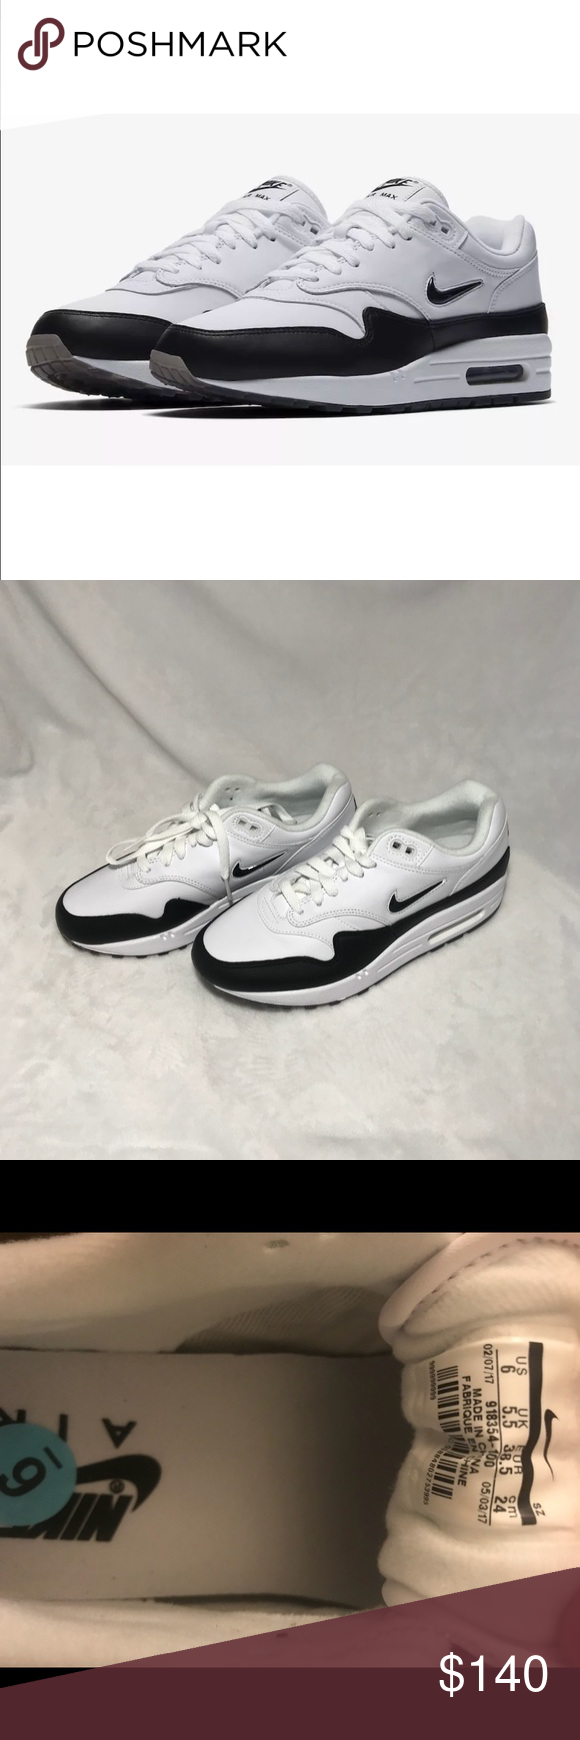 3874aa74c43a Nike Air Max 1 Primium SC Jewel Men s Size 6 Brand New Without box See  pictures Feel free to ask if you have any question Nike Shoes Sneakers